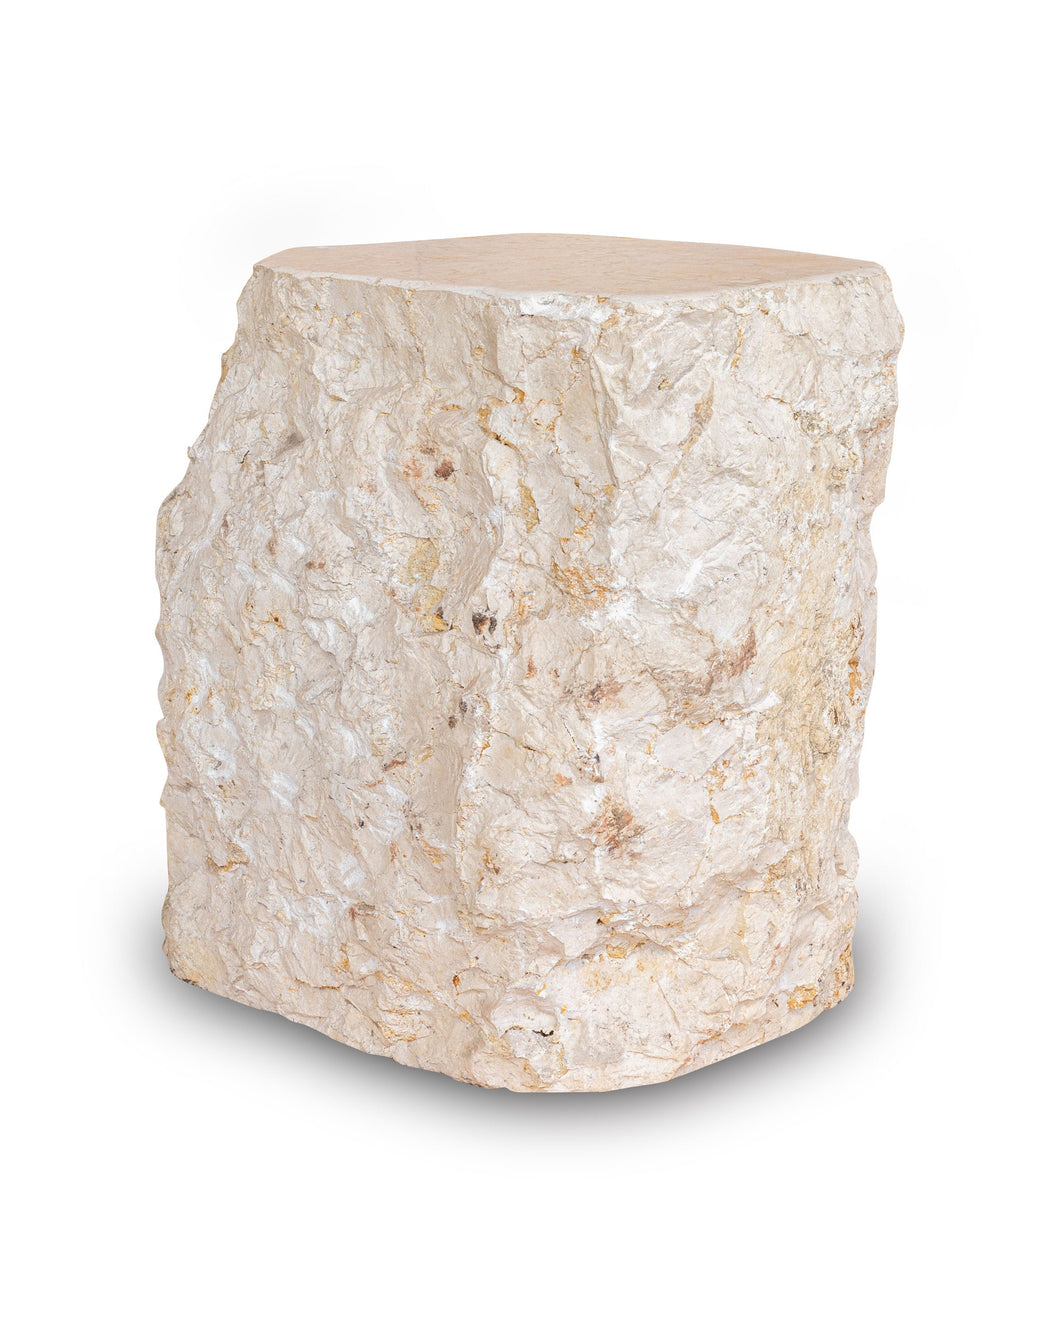 Natural Light Marble Side Table, Hammer Hit Edges Solid Stool or End Table #3 (COMING IN THE END OF AUGUST)